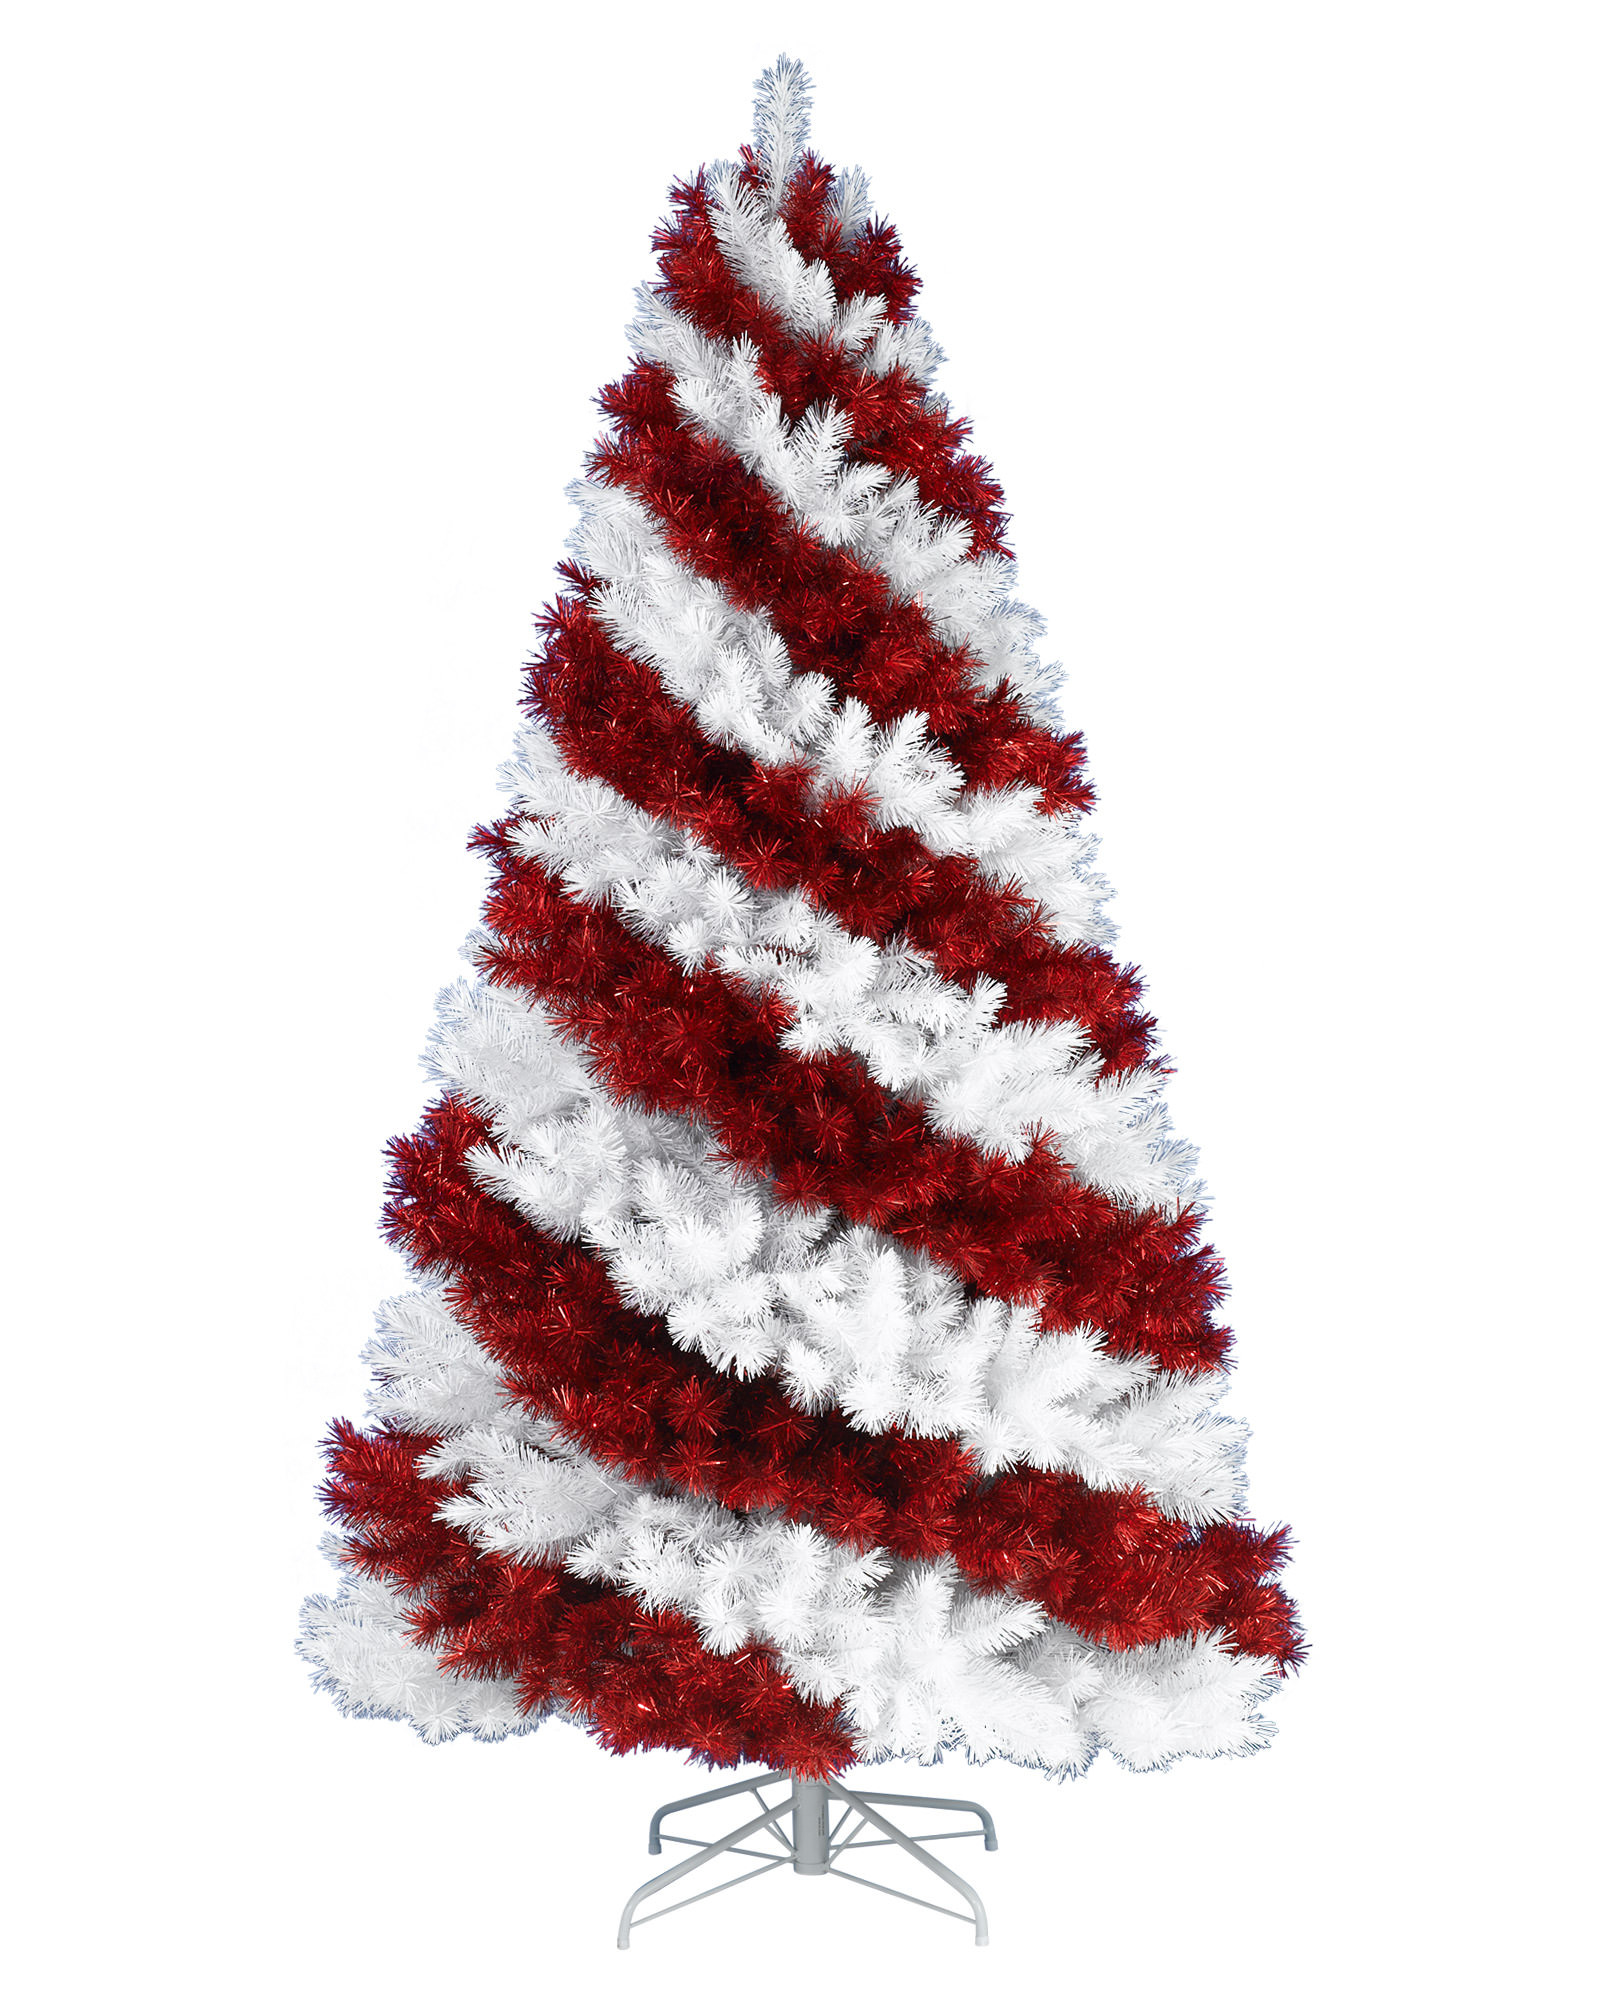 Candy Cane Christmas Tree  Candy Cane Christmas Trees line